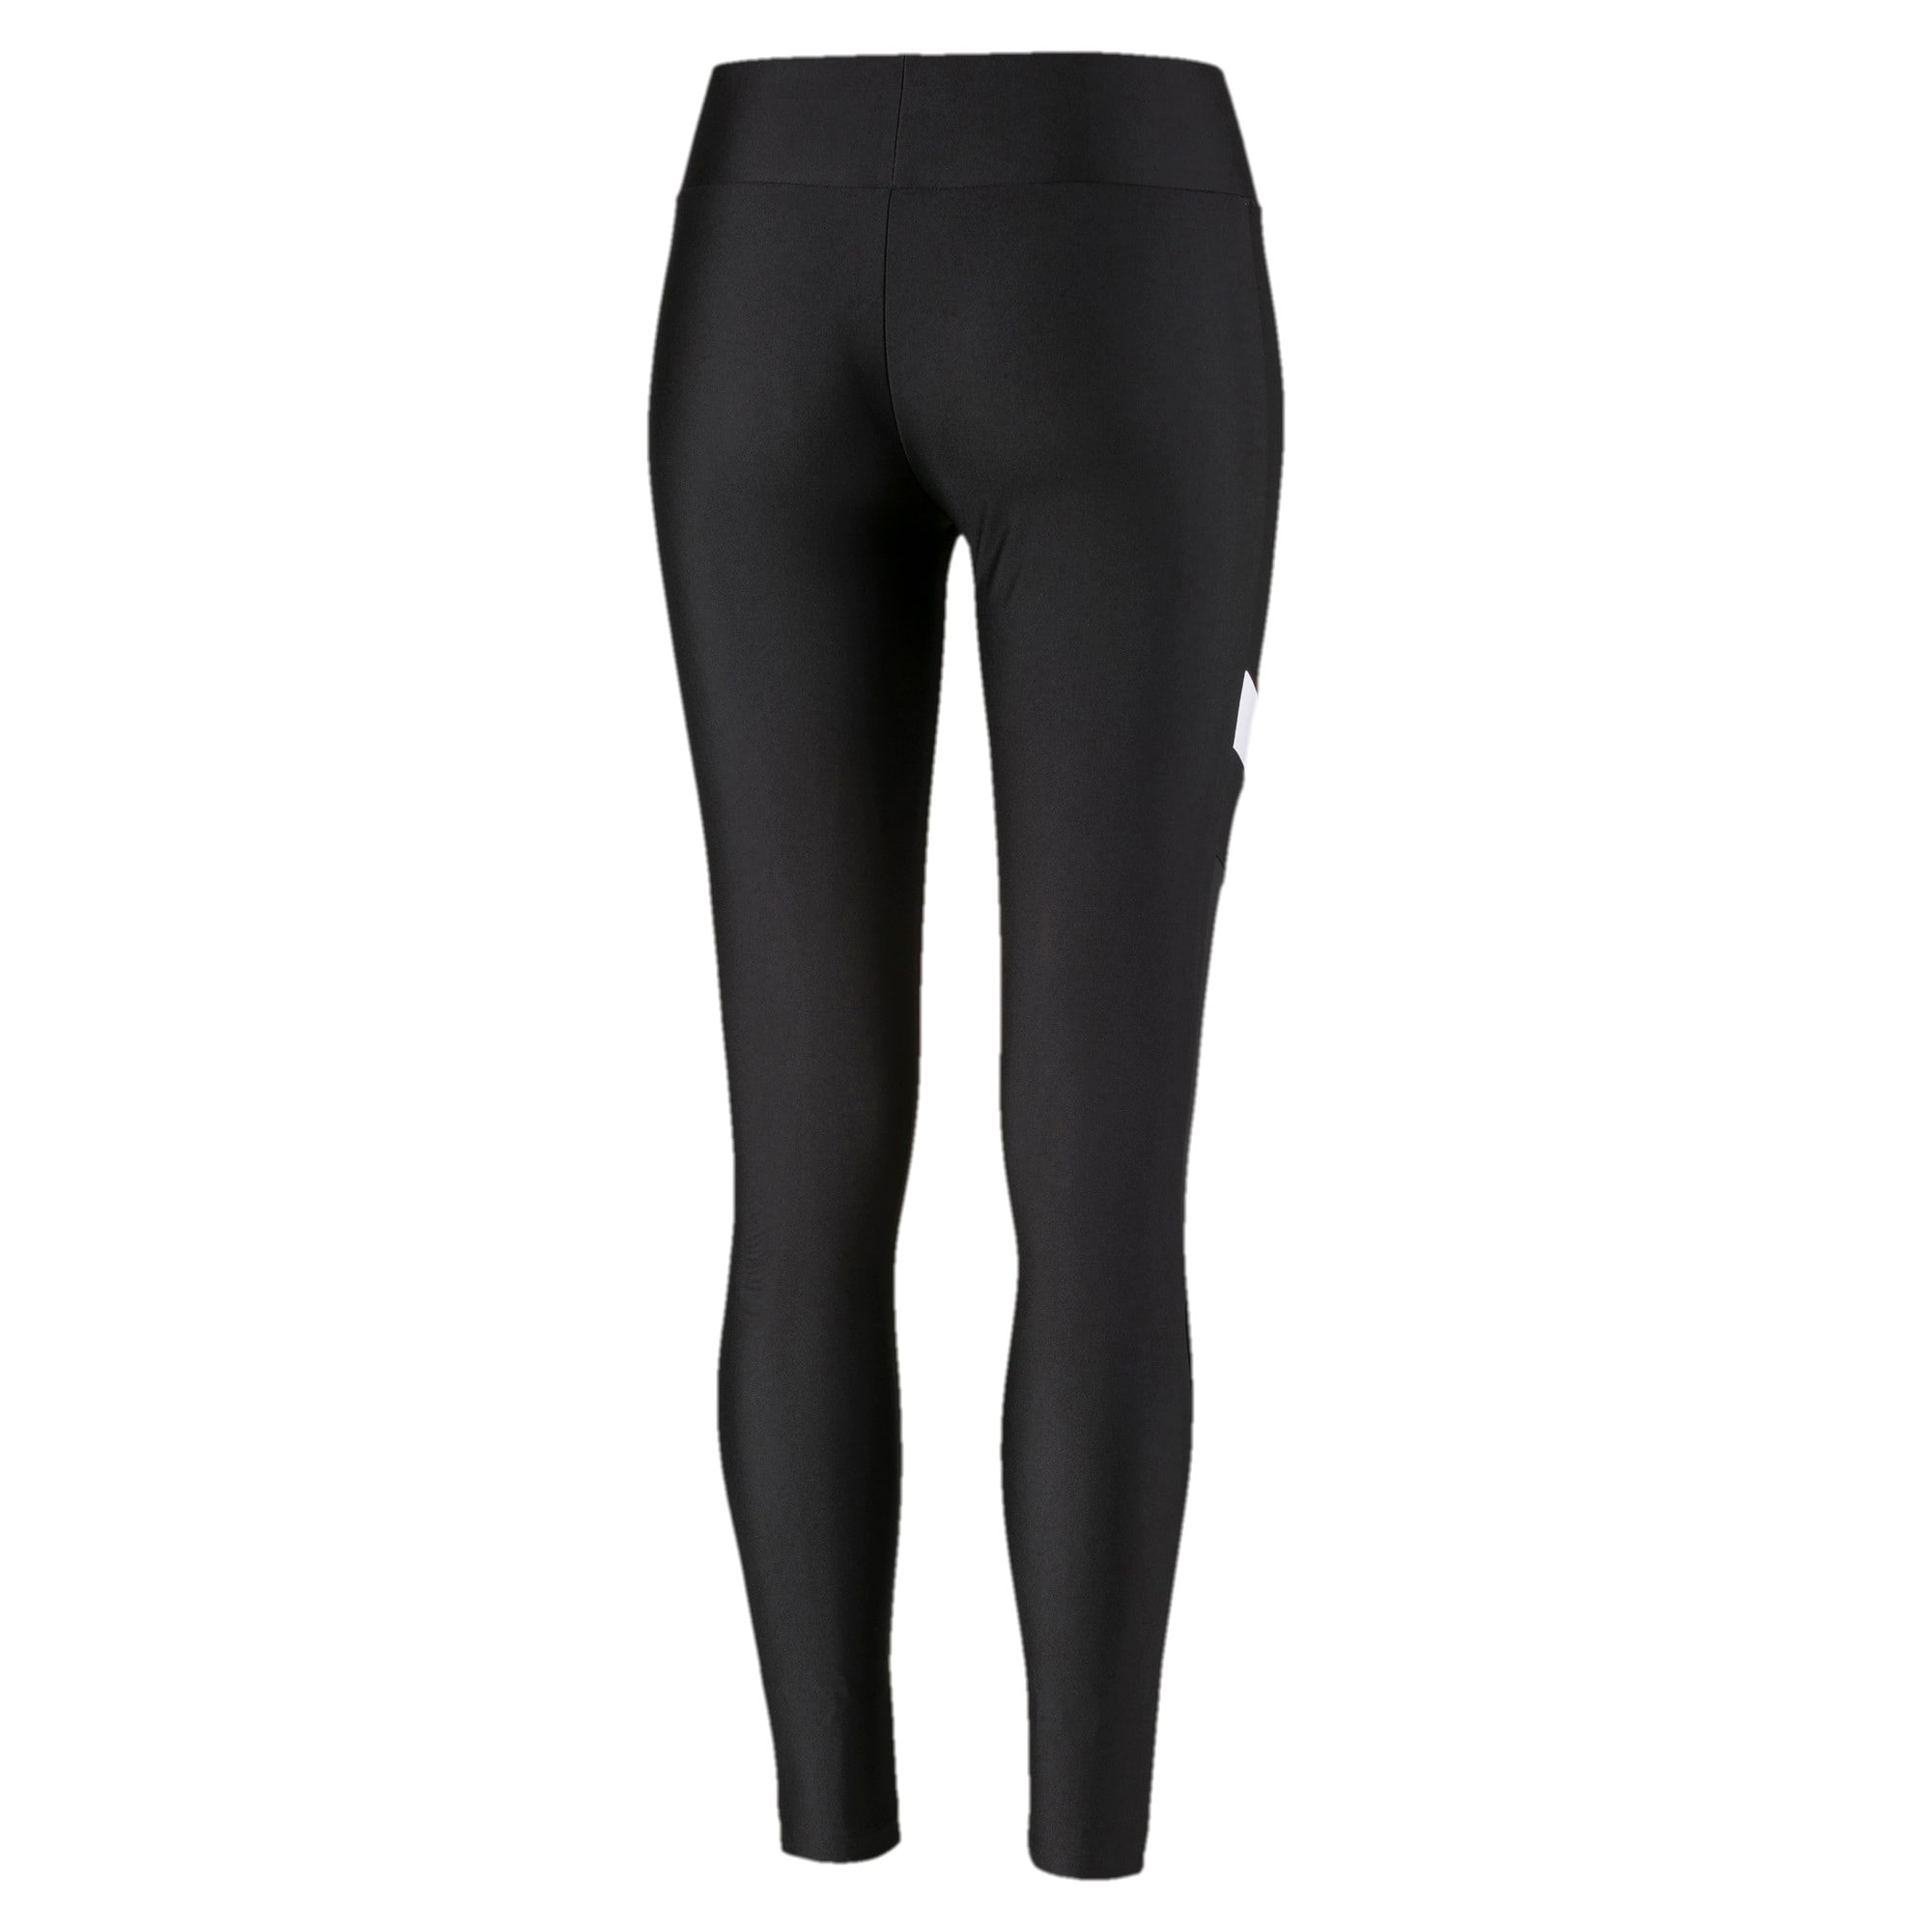 Thumbnail 2 of Chase Damen Leggings, Puma Black, medium